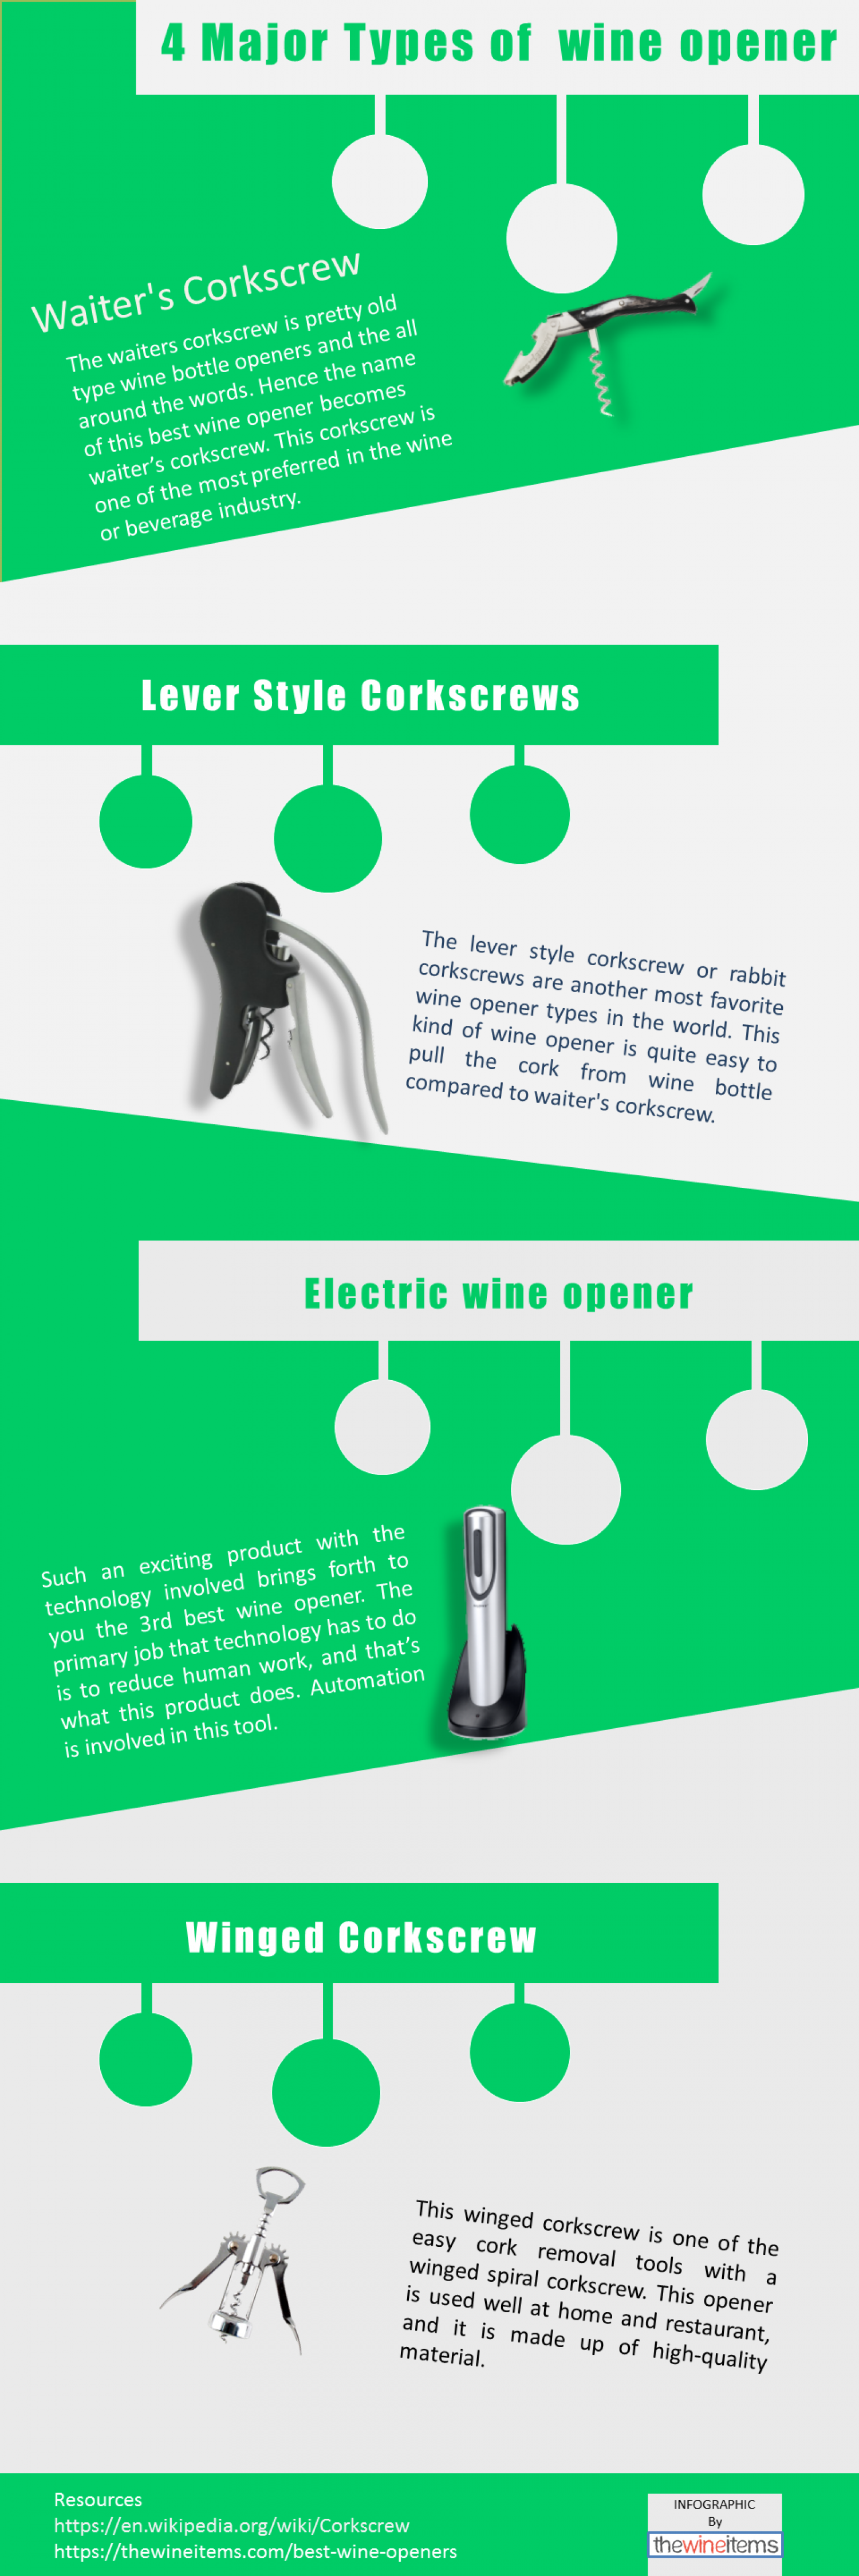 4 Major types of wine openers Infographic